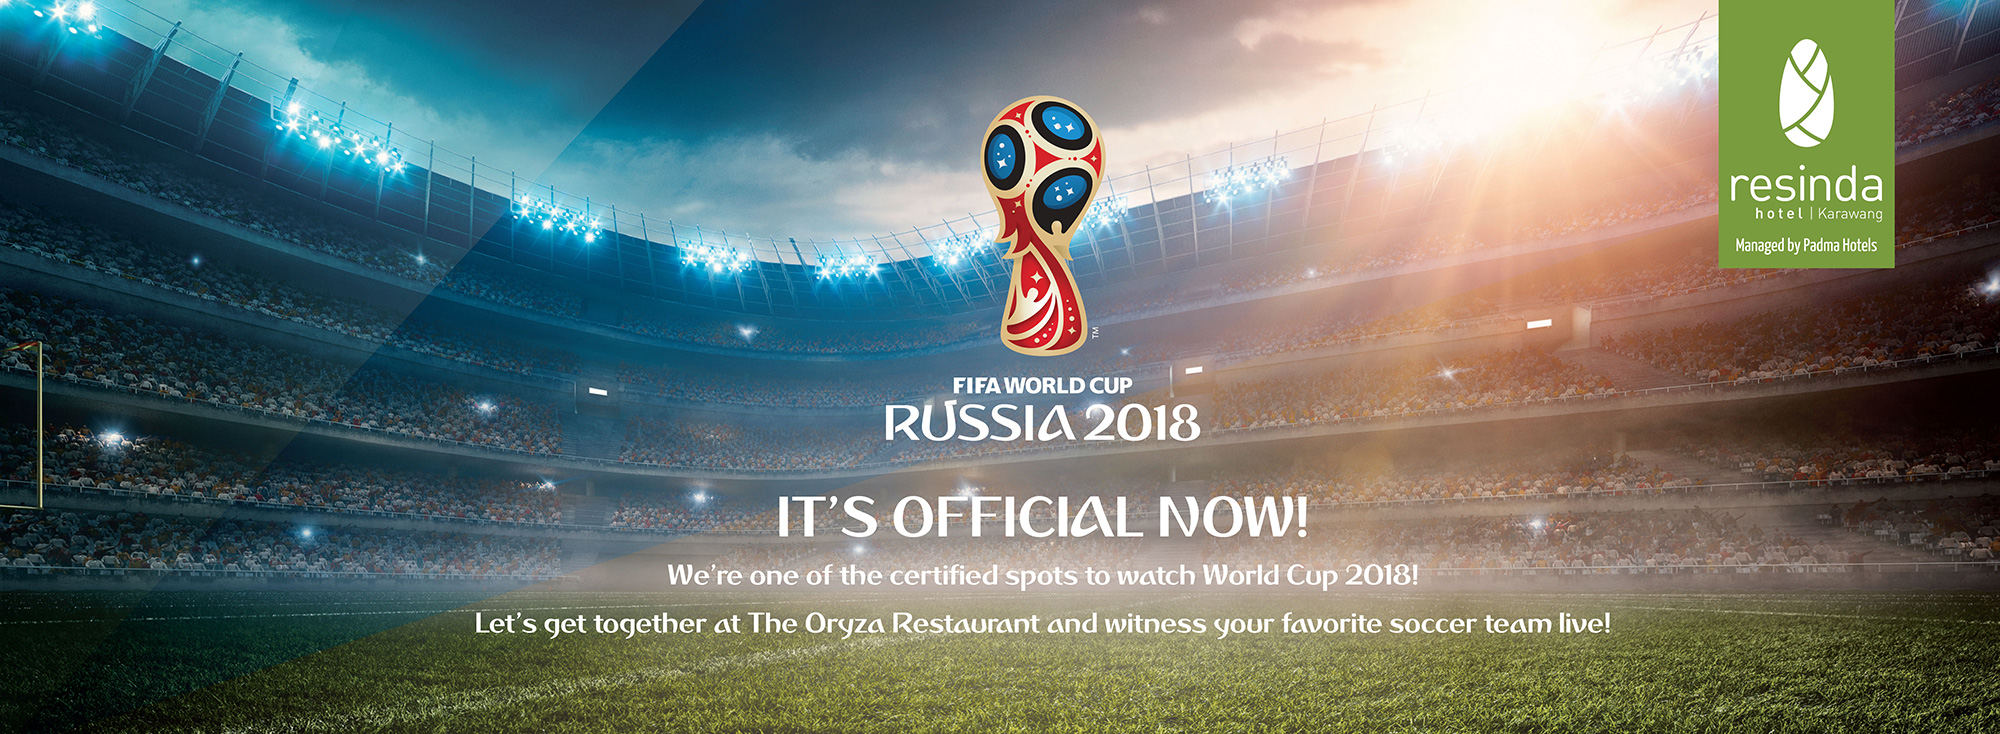 World Cup 2018 at The Oryza Restaurant